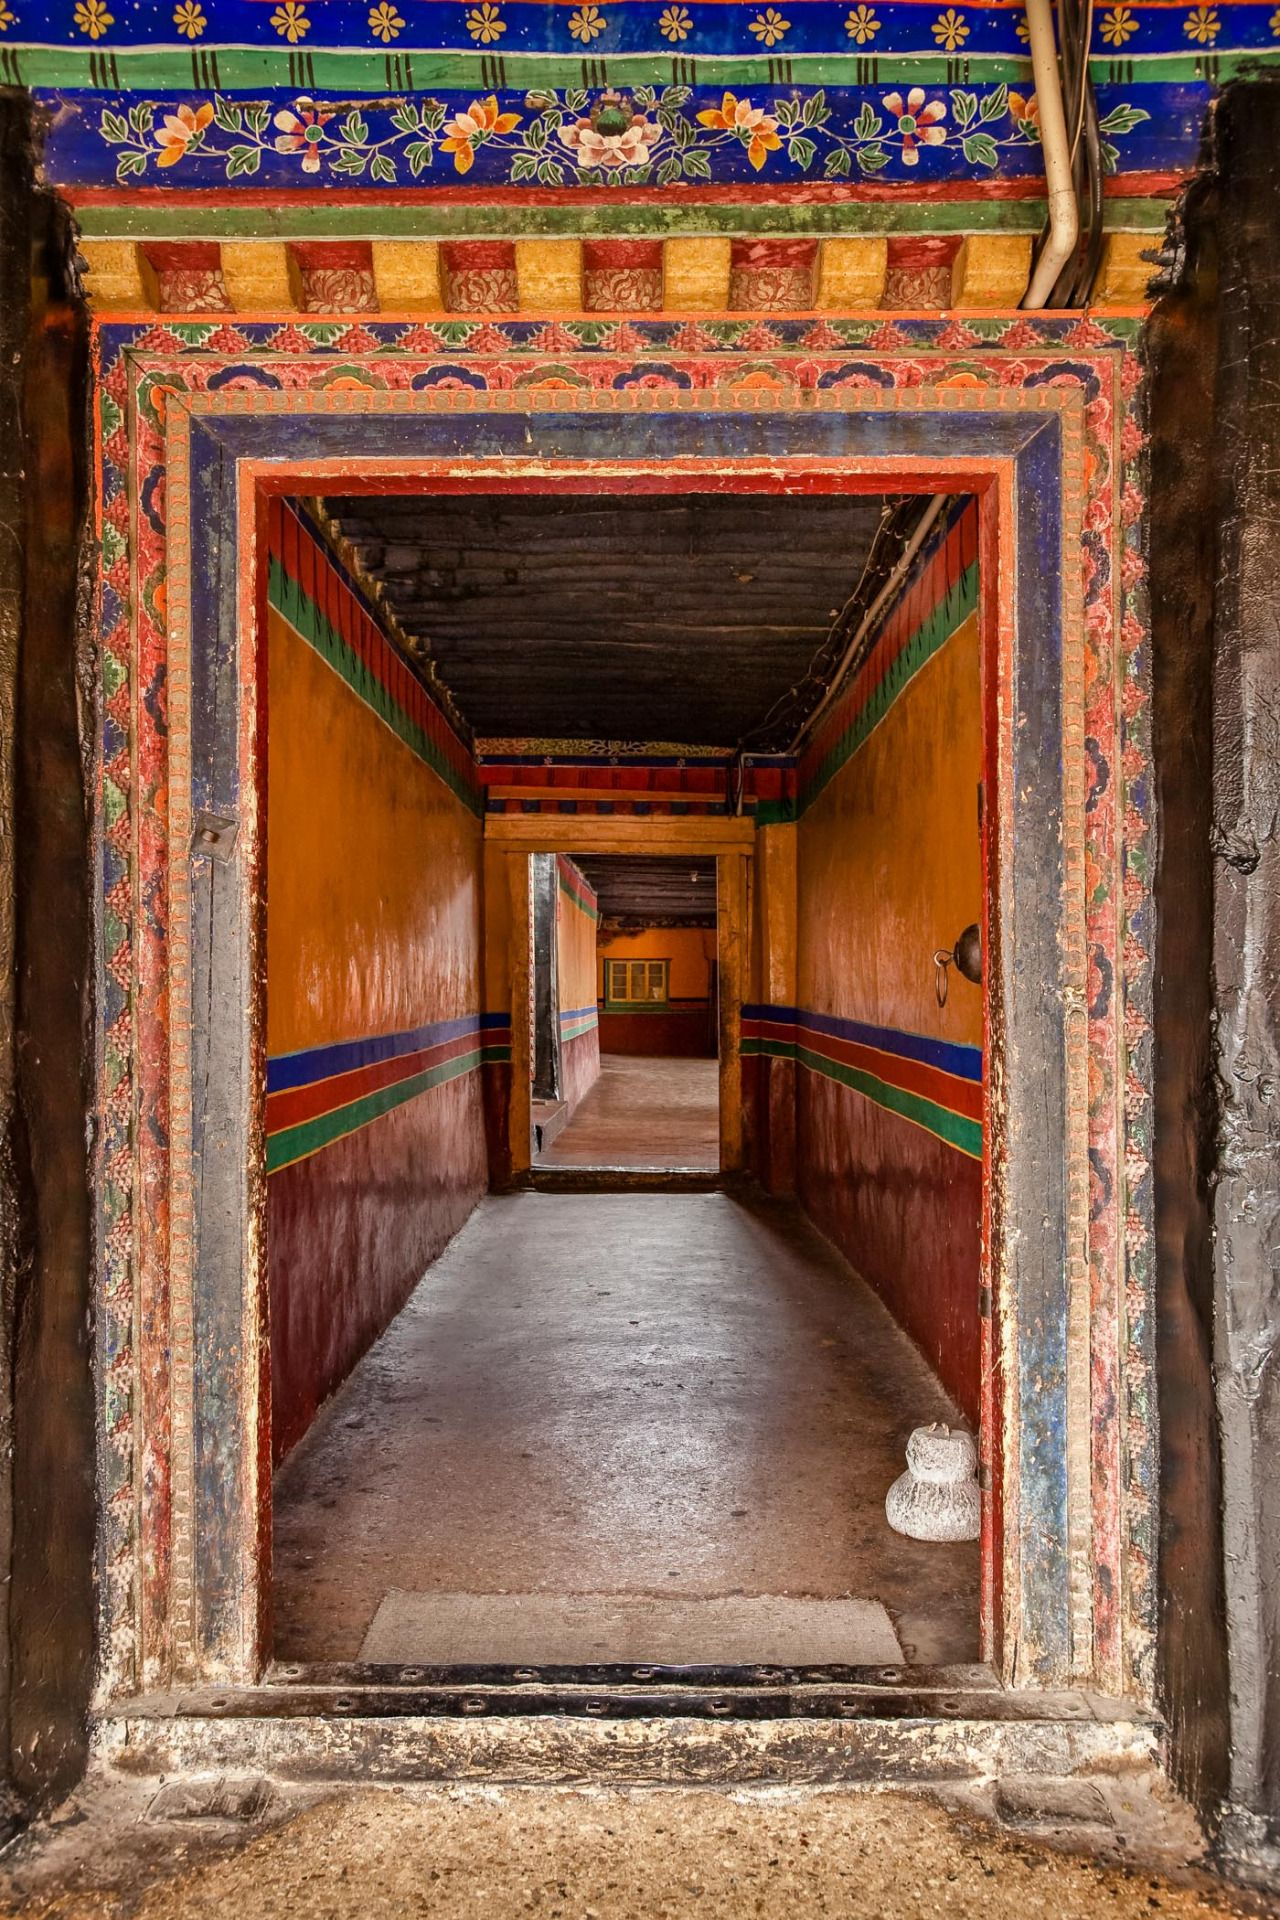 tibet first impression tibet palaces and the o jays a photo story documenting my first impression of tibet and its surrounding nature people and culture